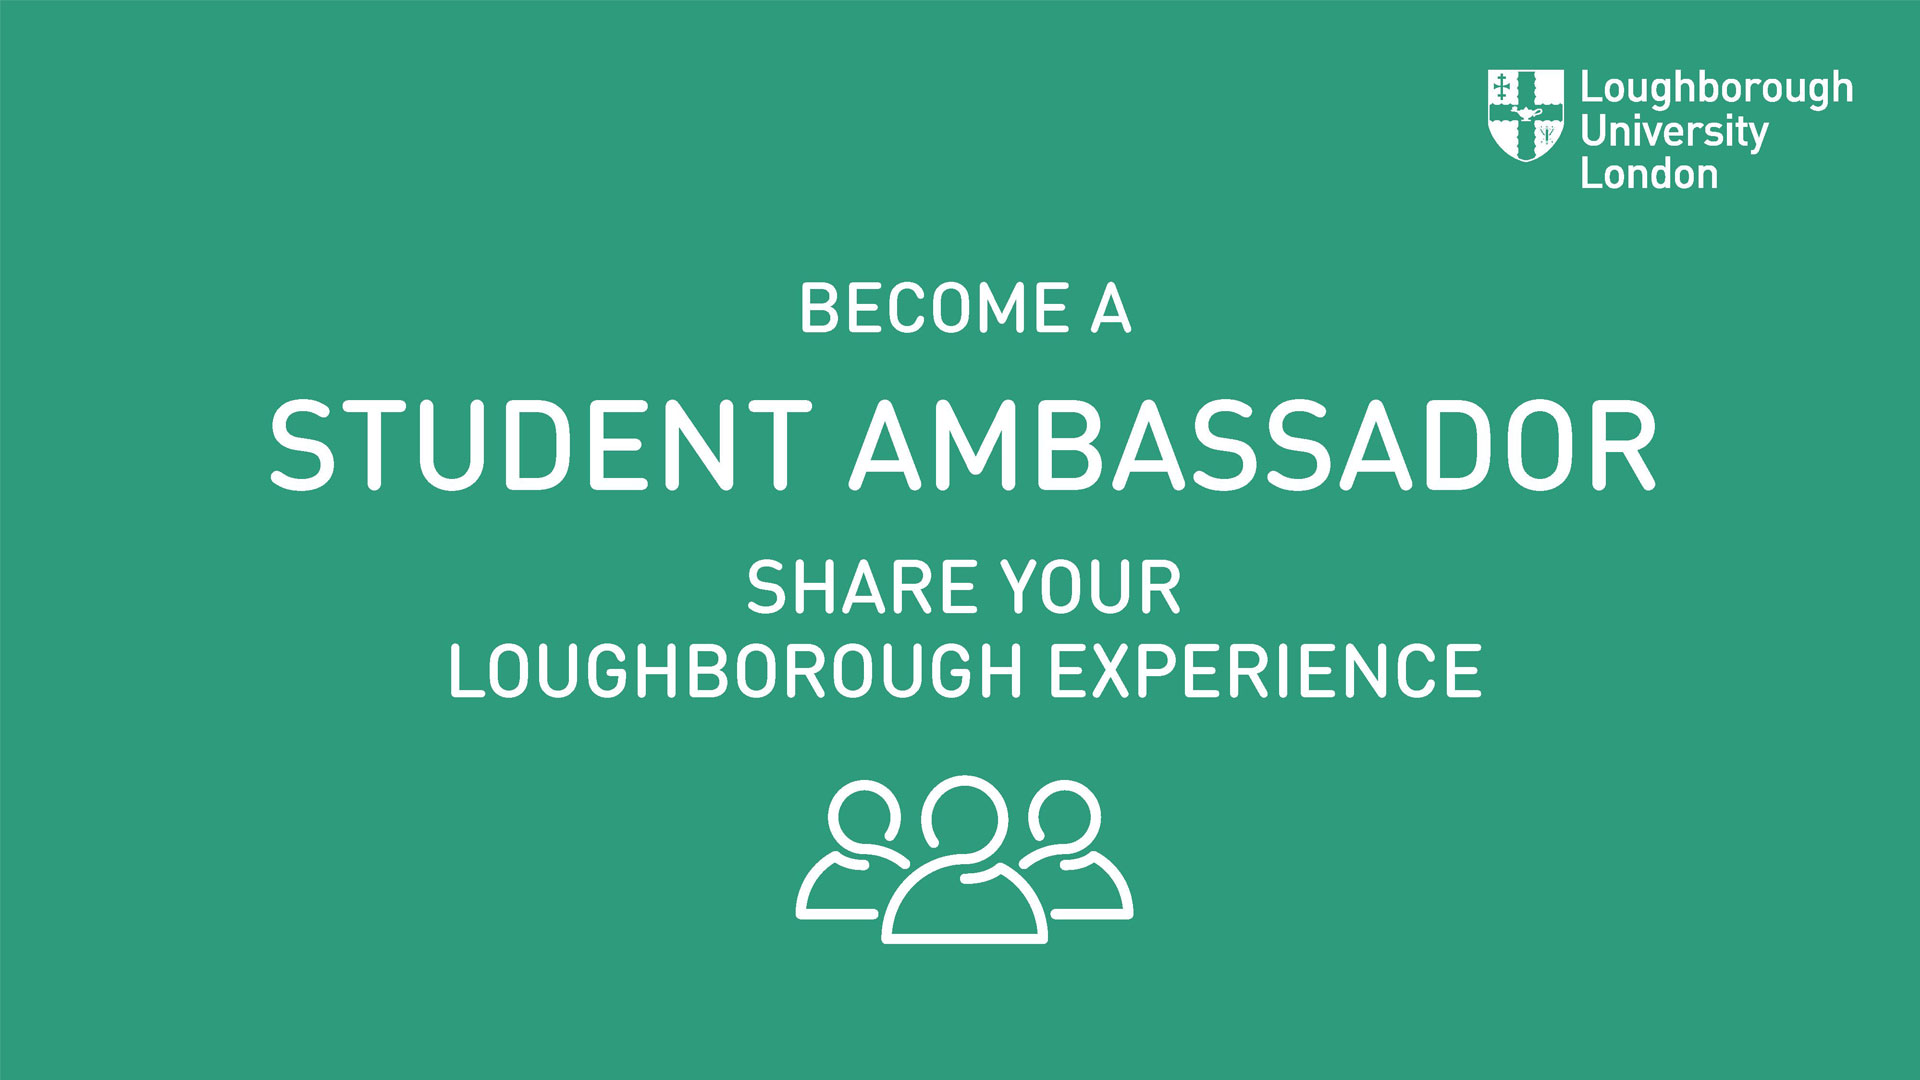 Why you should apply to become a Student Ambassador